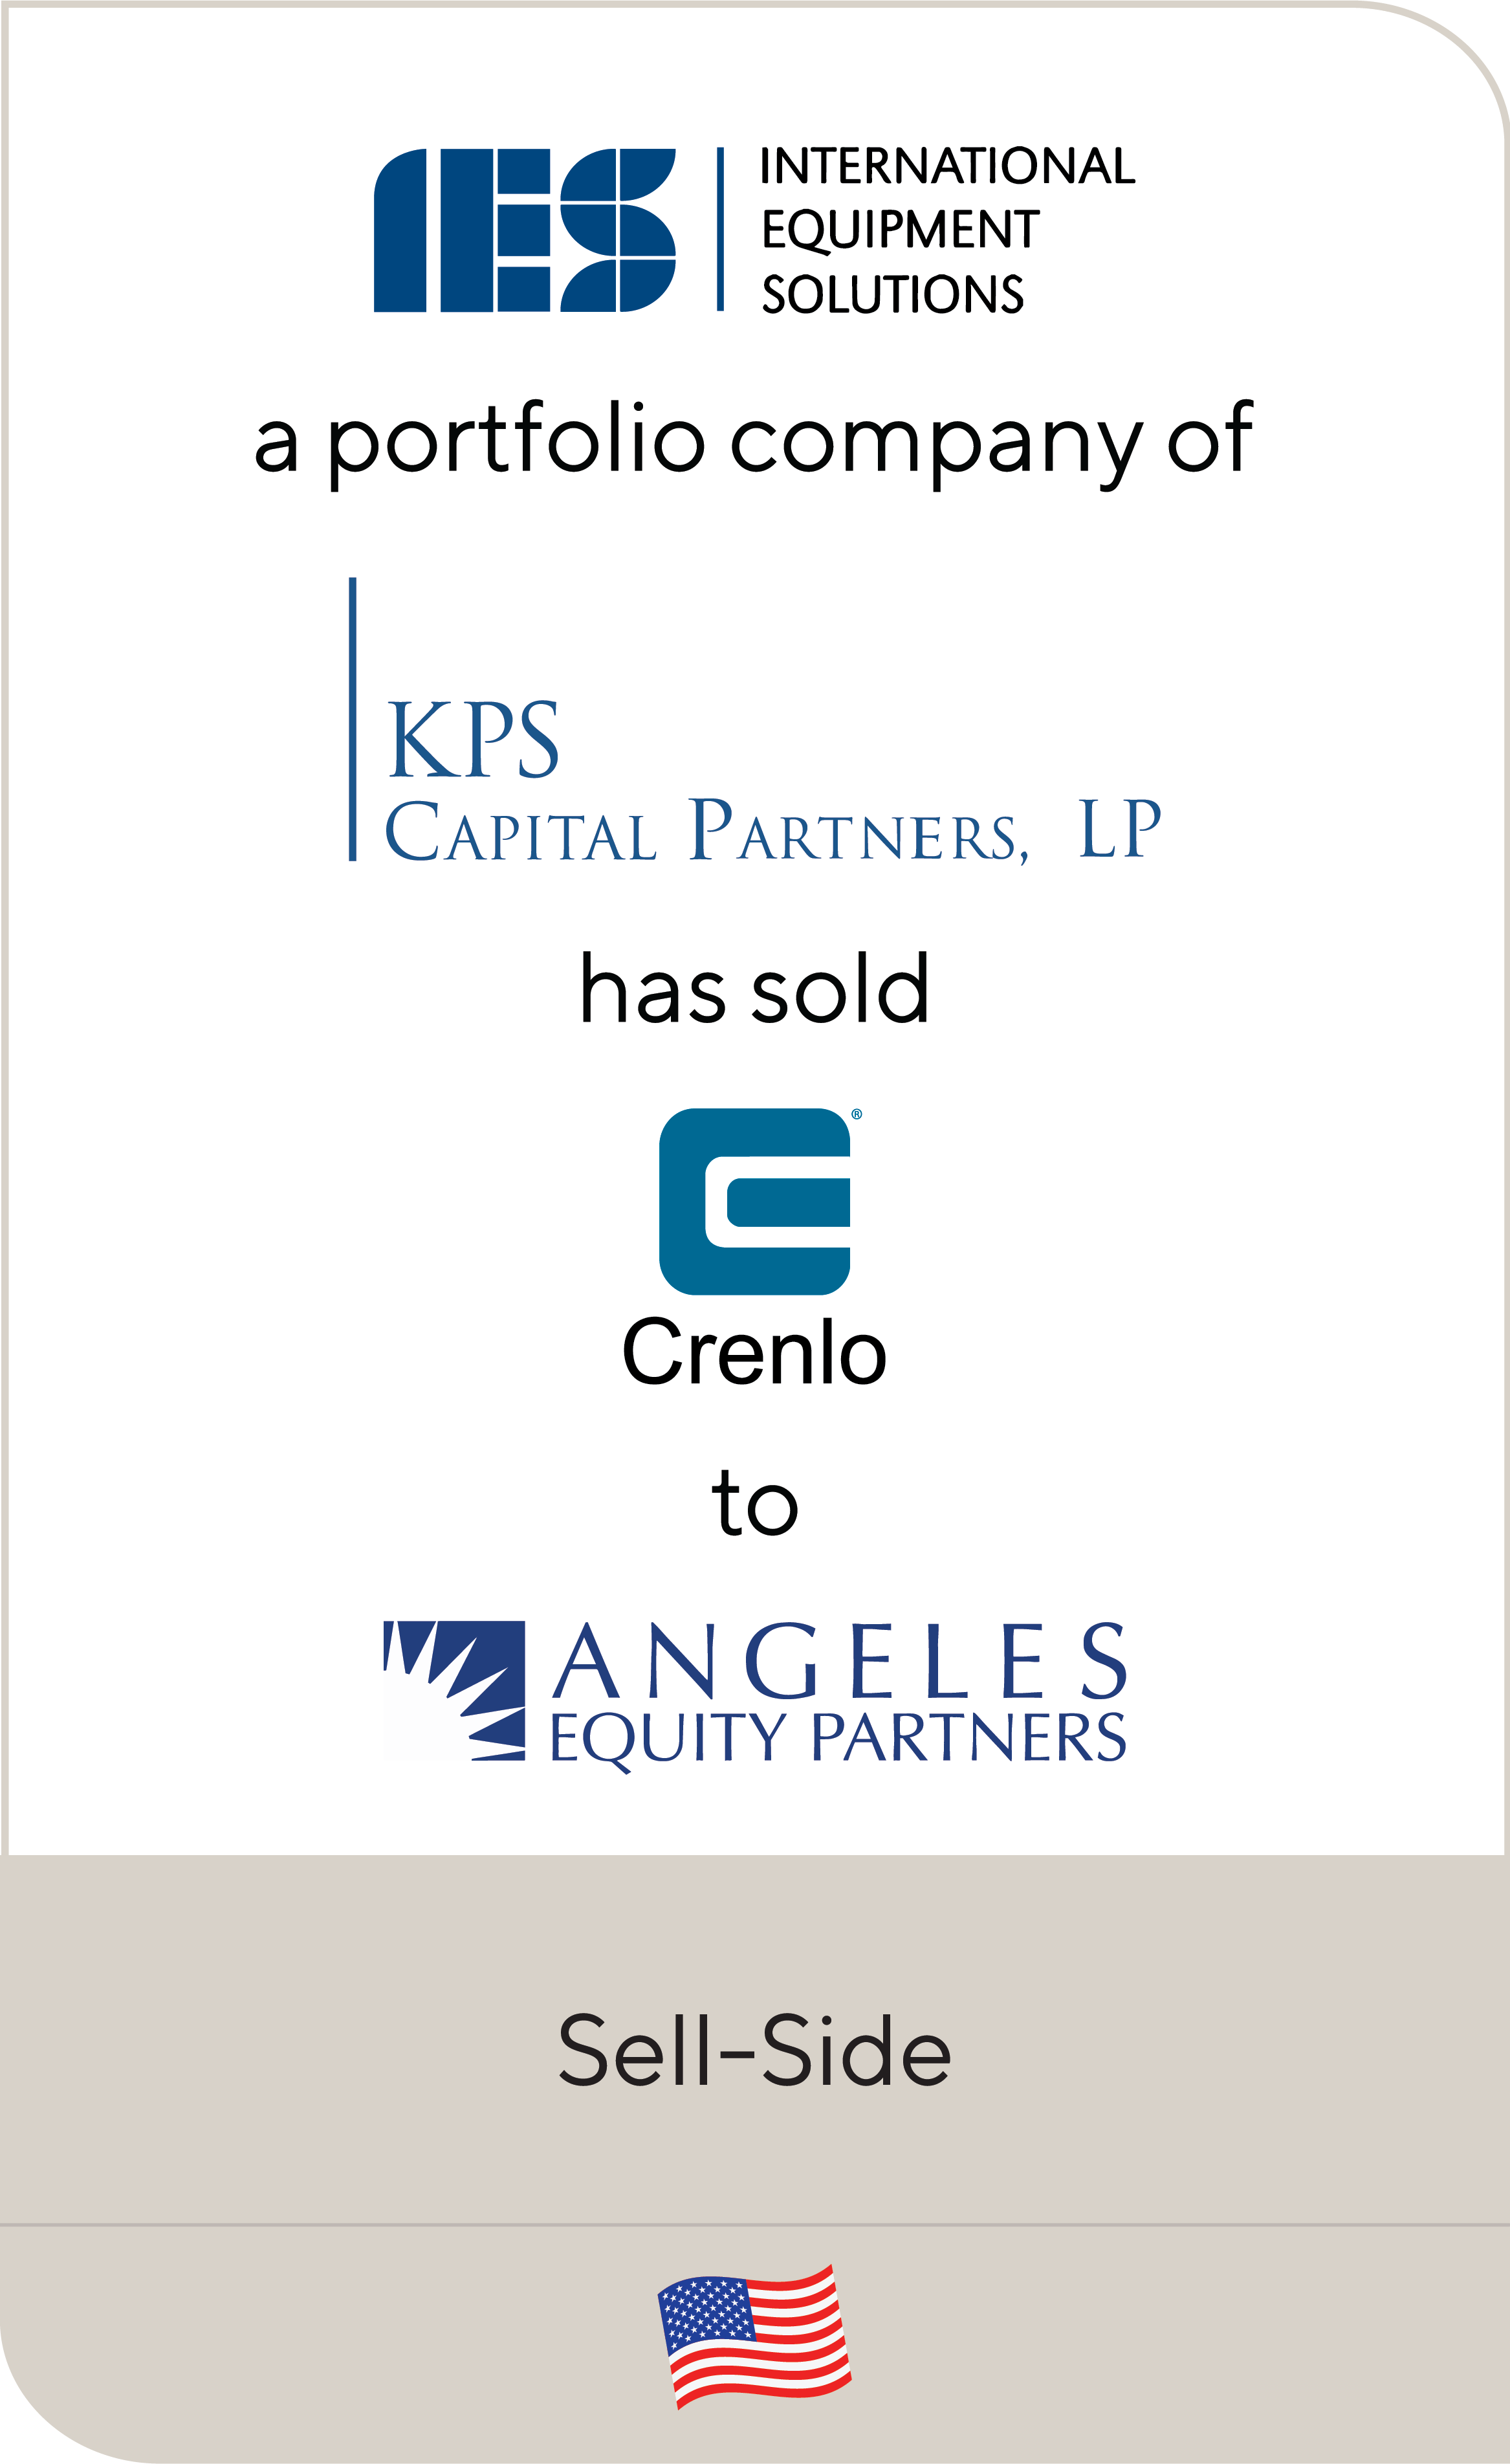 International Equipment Solutions (IES) KPS Capital Partners Crenlo Angeles Equity Partners 2019